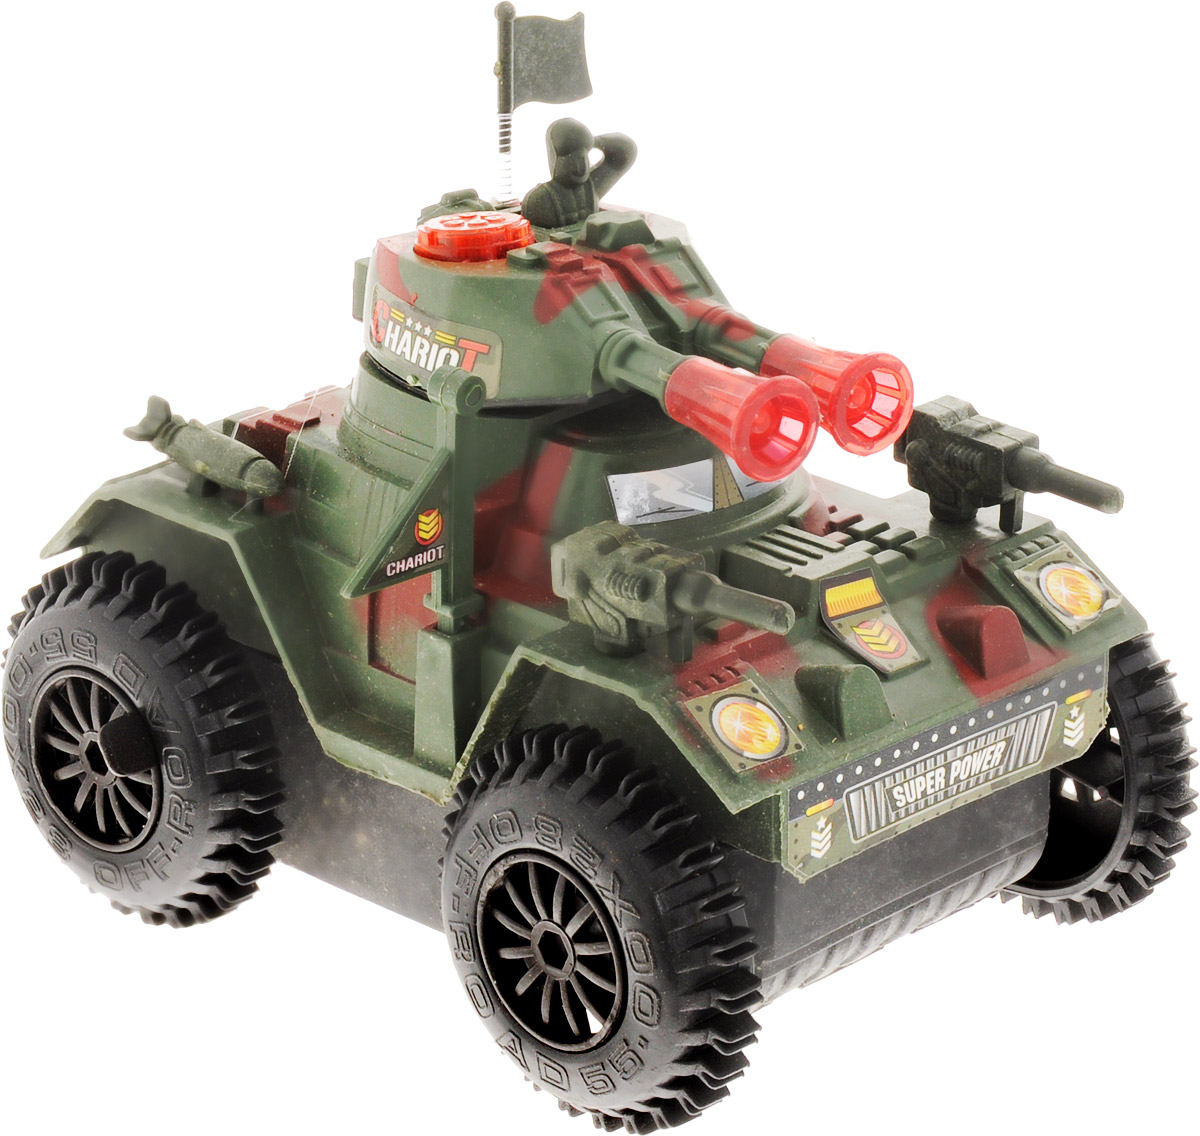 Junfa Toys Танк Super Chariot chariot